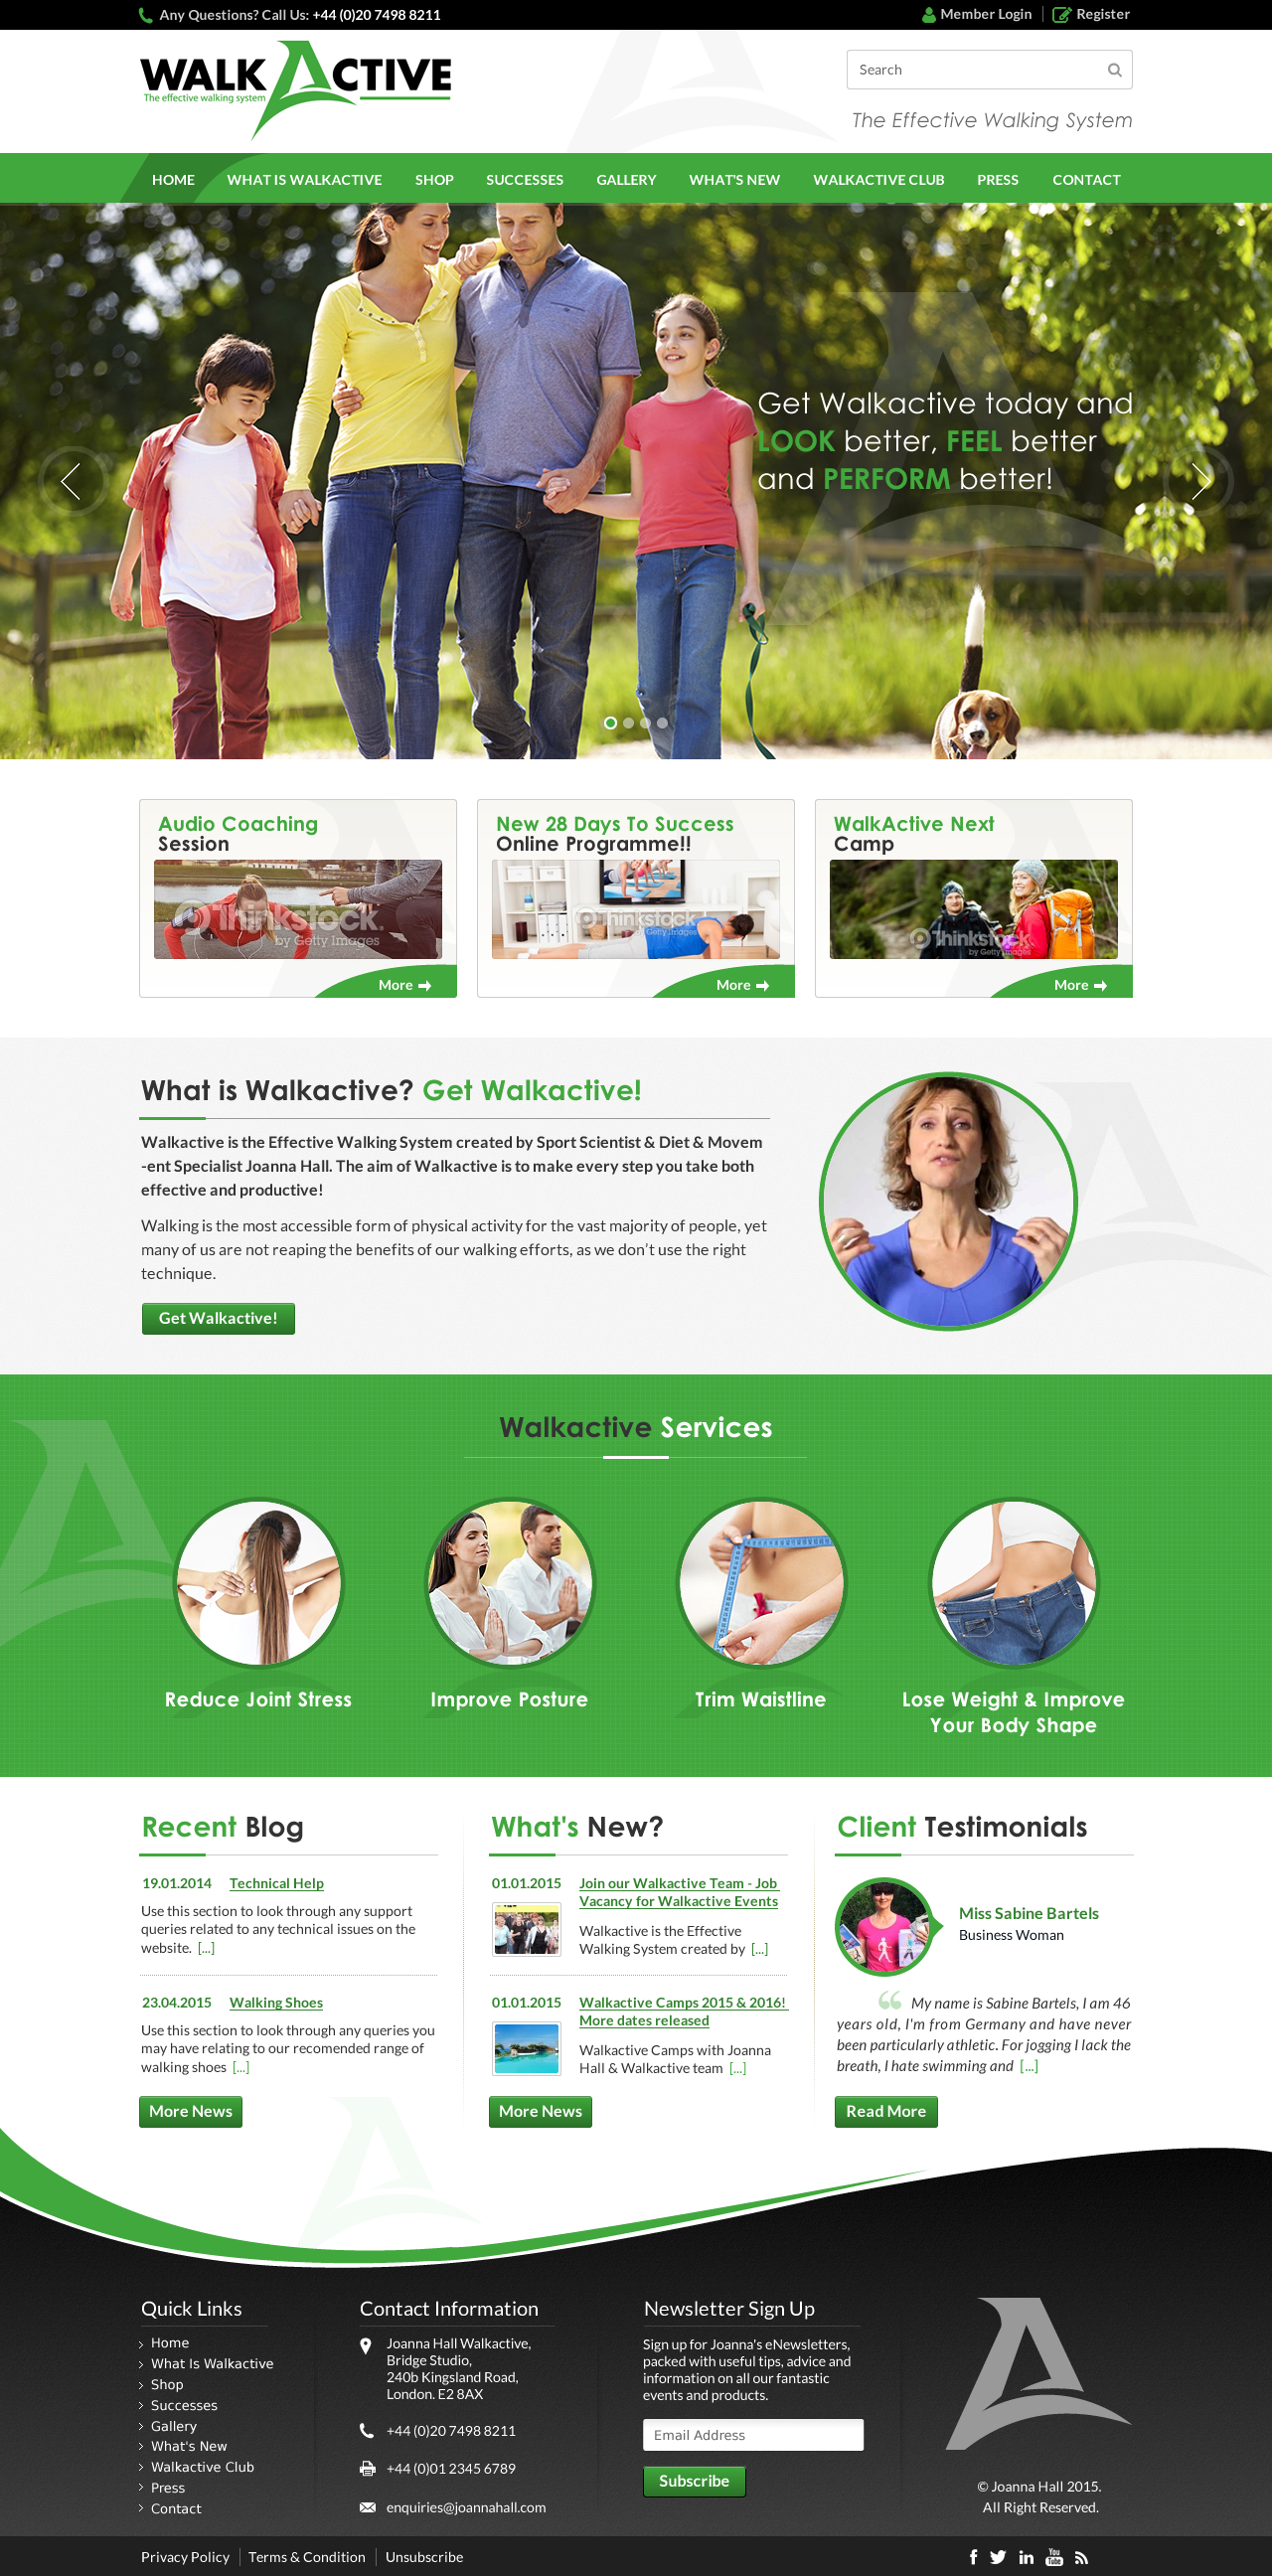 Website Design for a Walking/Fitness Company - Health